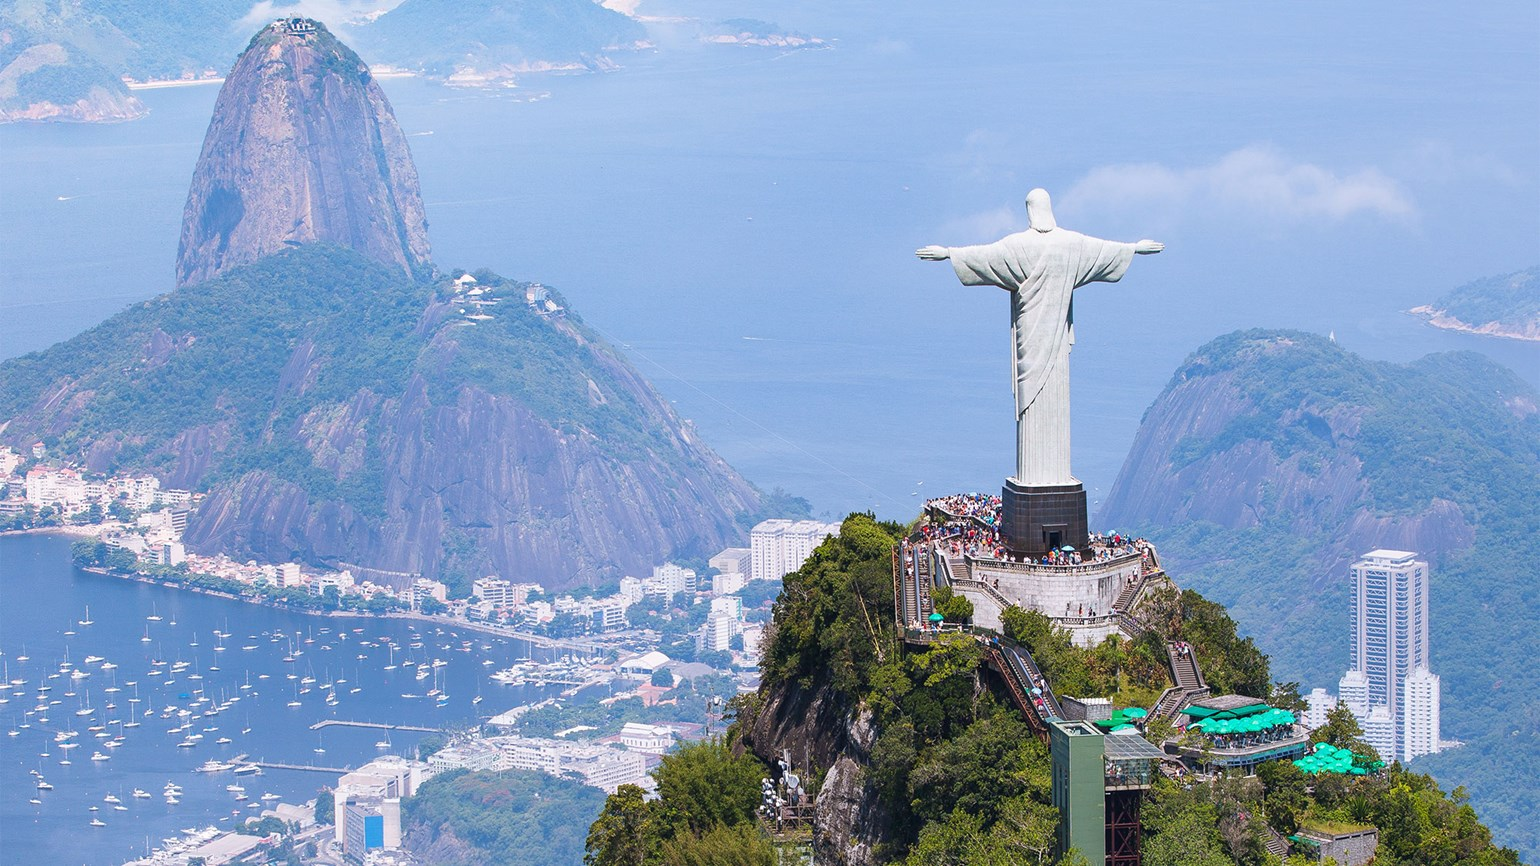 With simpler visa process, Brazil expects influx of U.S. visitors